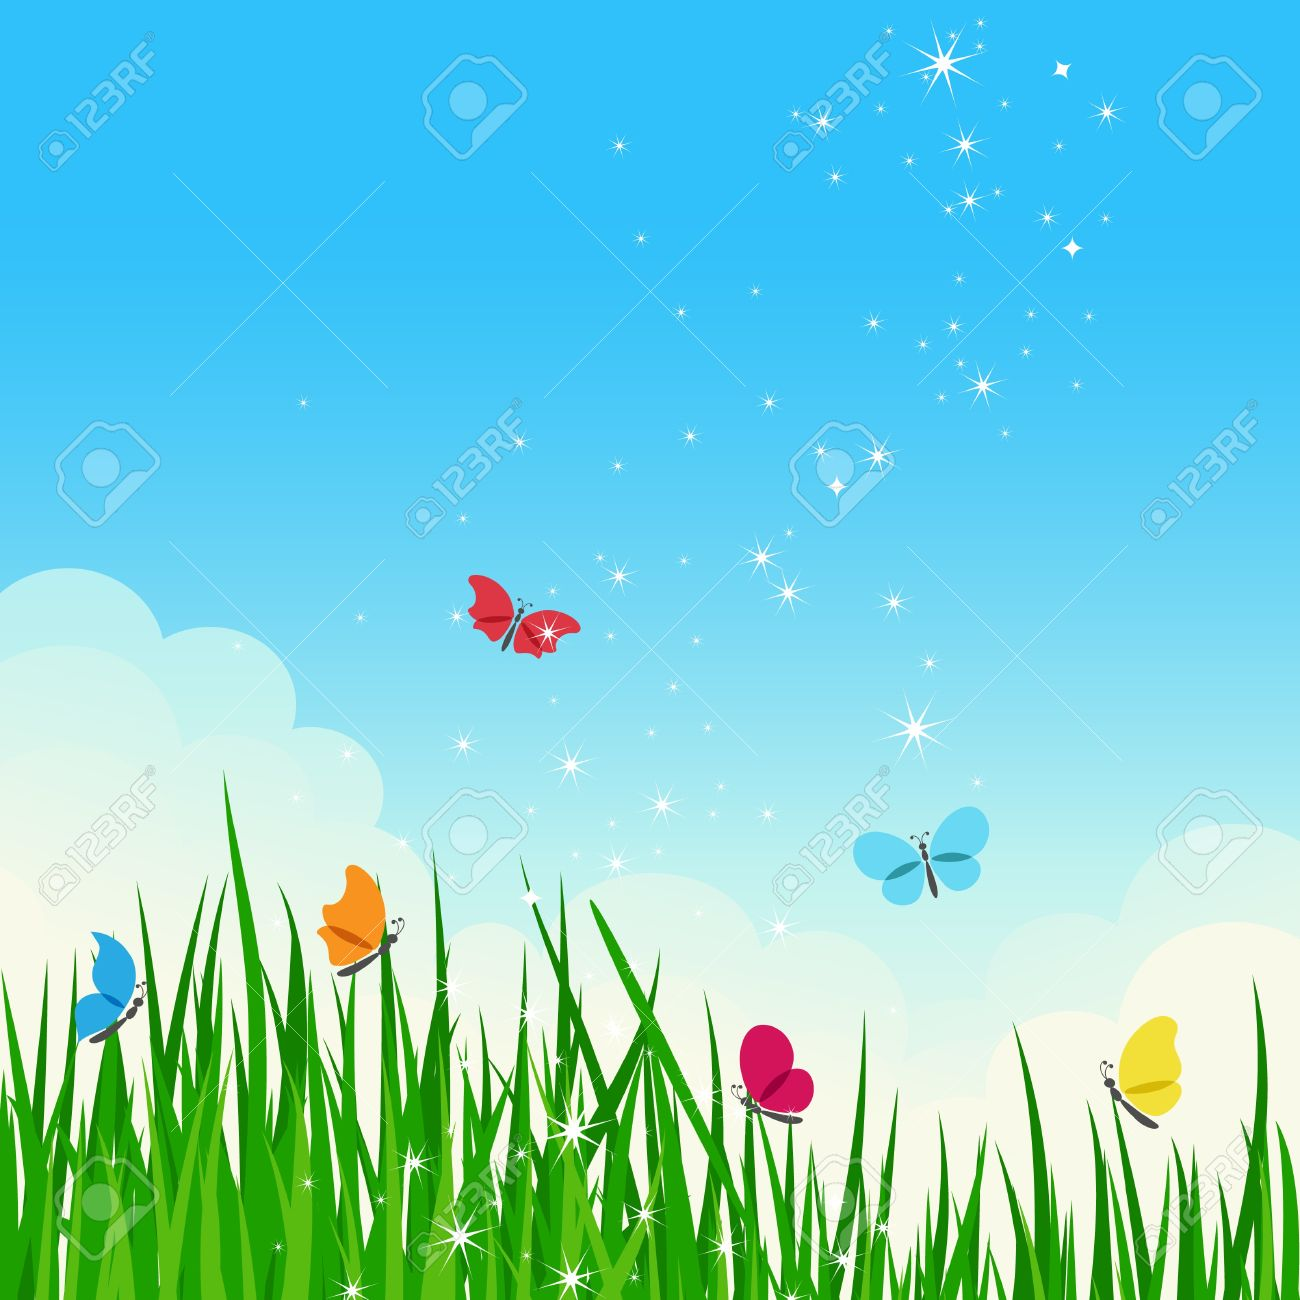 Beautiful Shiny Summer Meadow With Colorful Butterflies. Royalty.